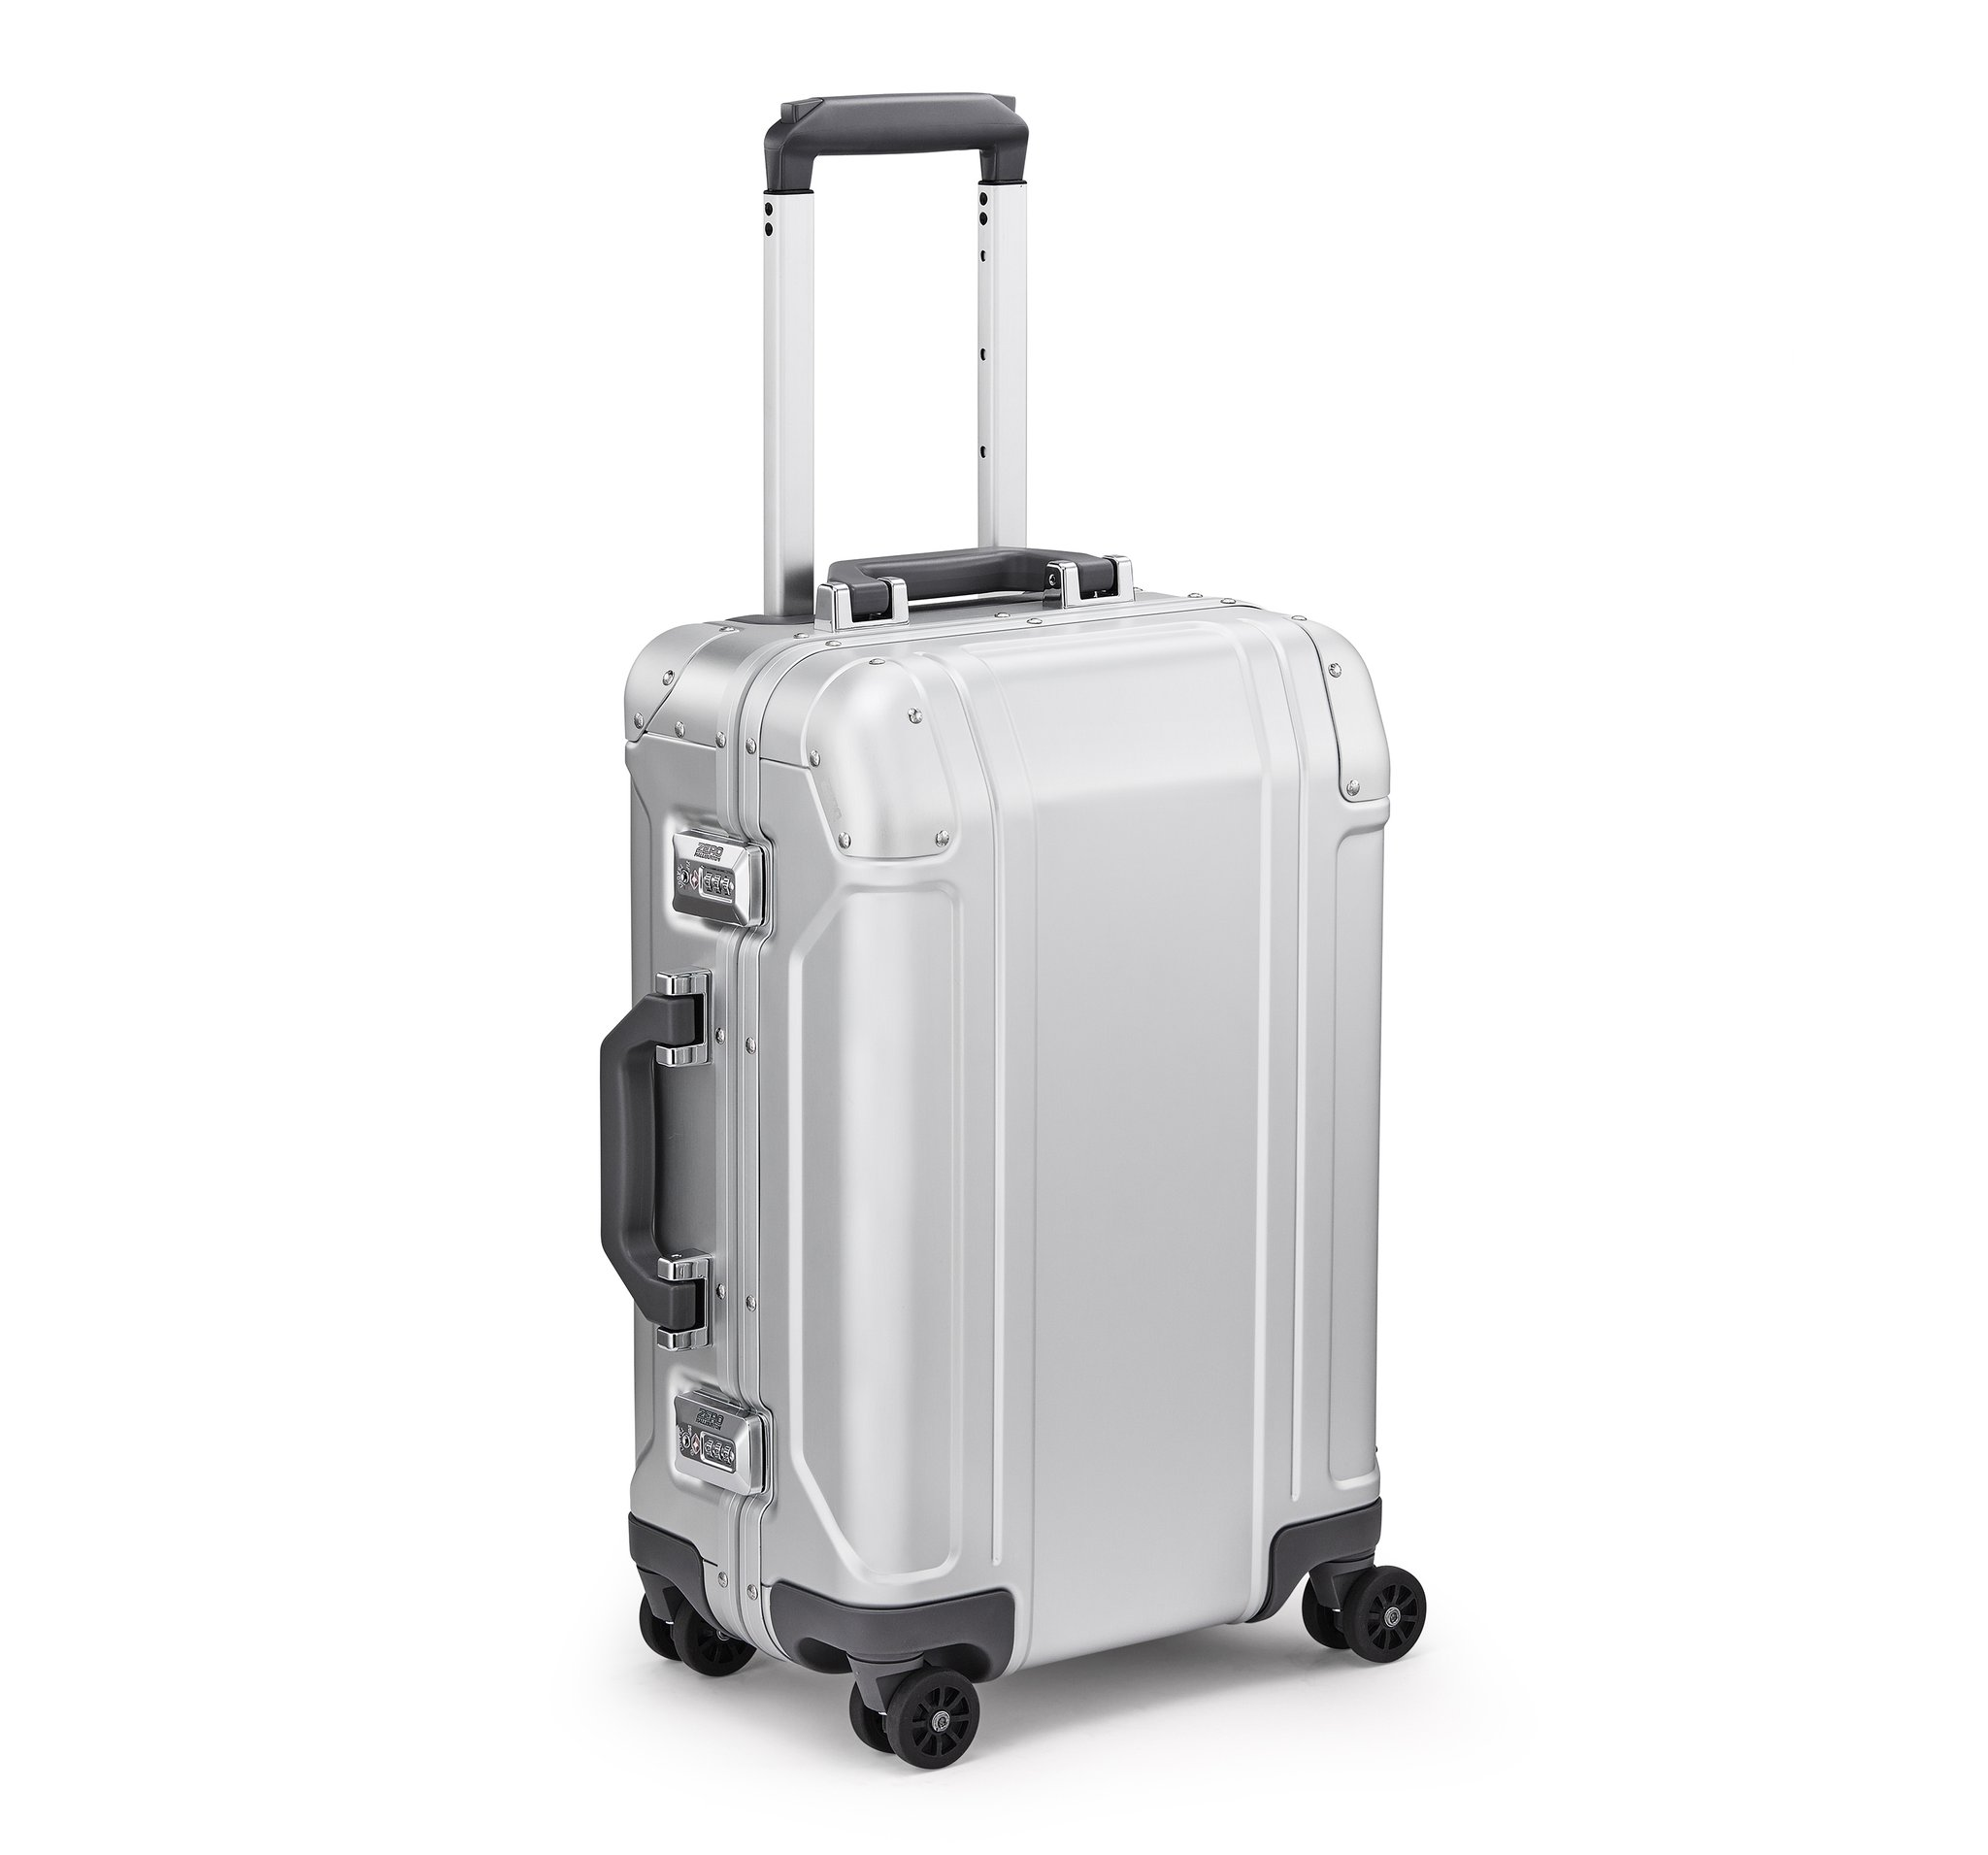 GEO Aluminum 3.0 - International Travel Case by Zero Halliburton (Color: Silver)